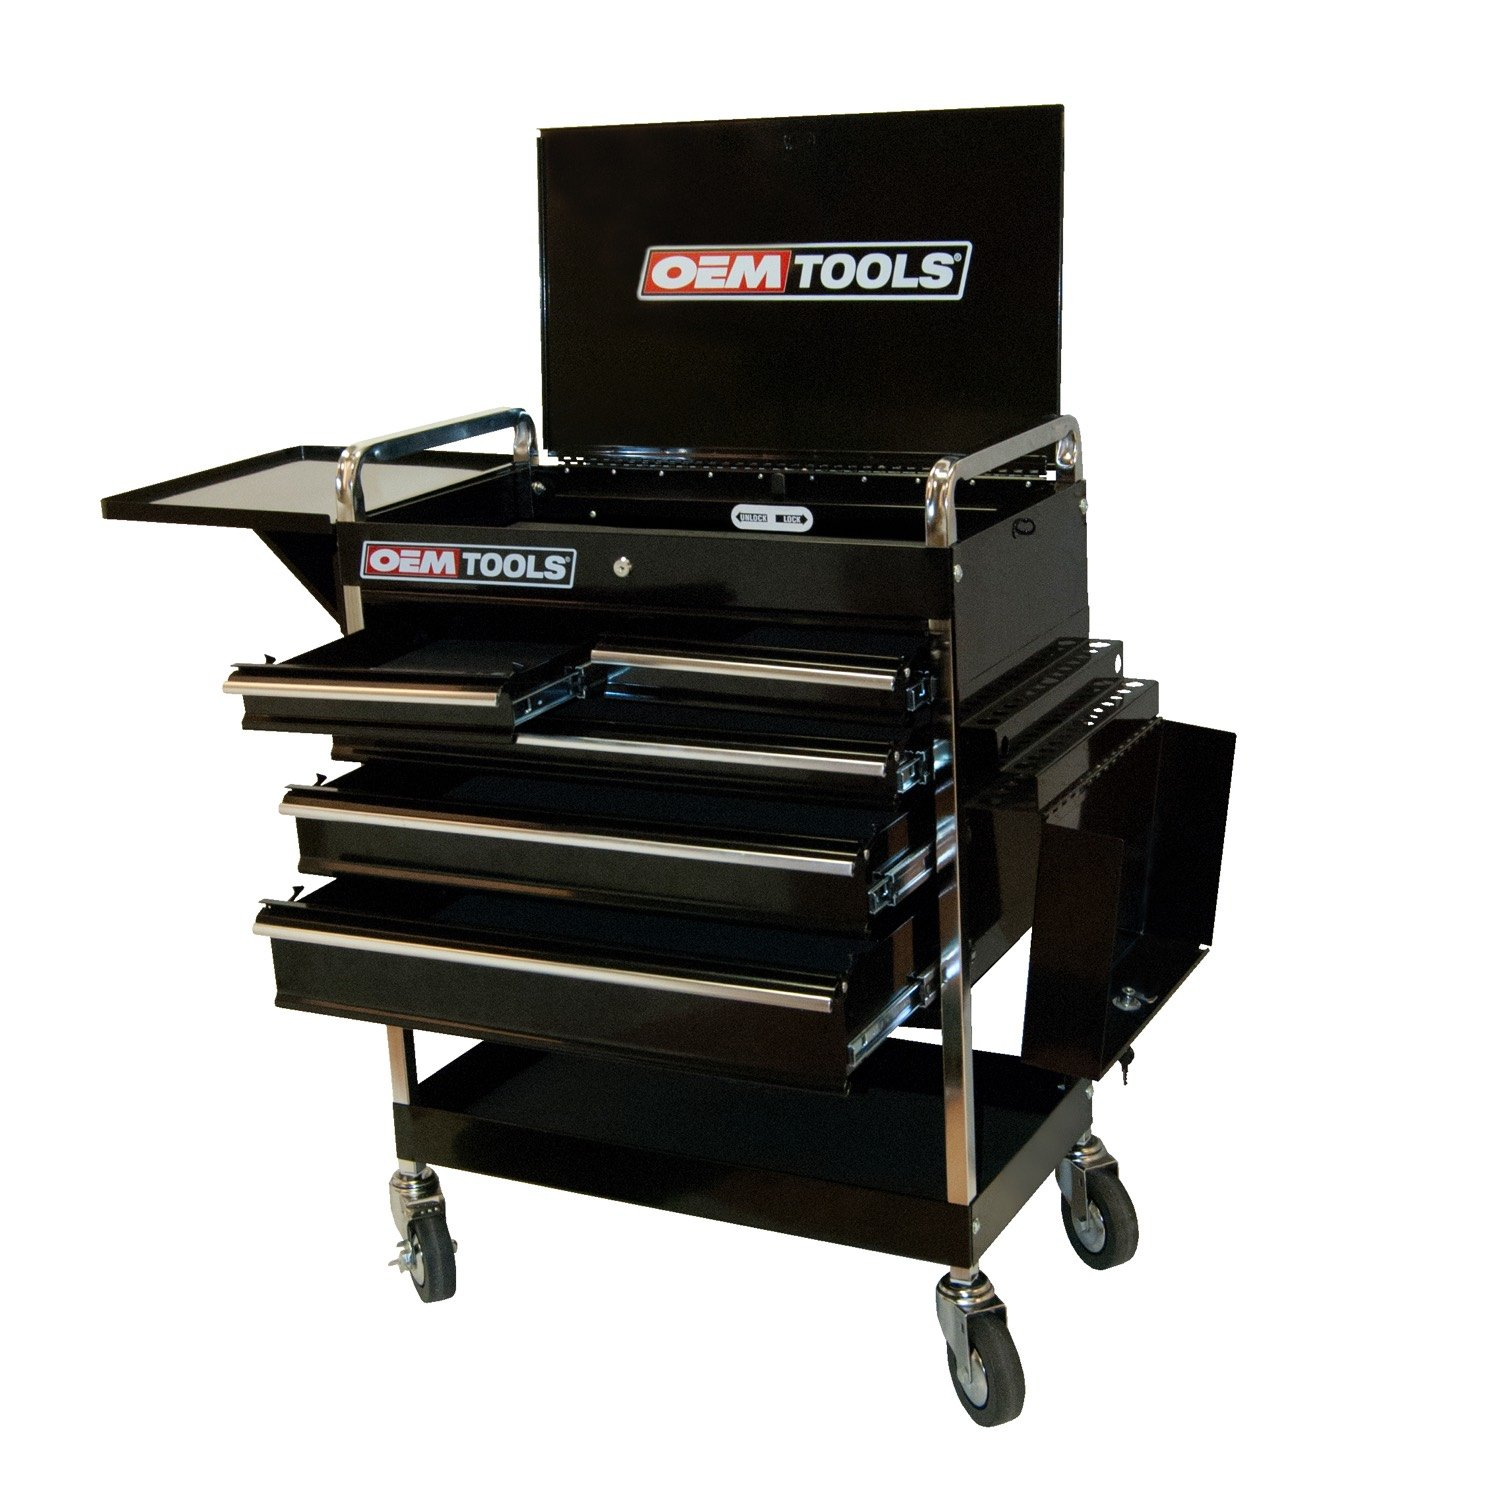 OEMTOOLS 24963  Service Cart with Five Drawers and One Tray